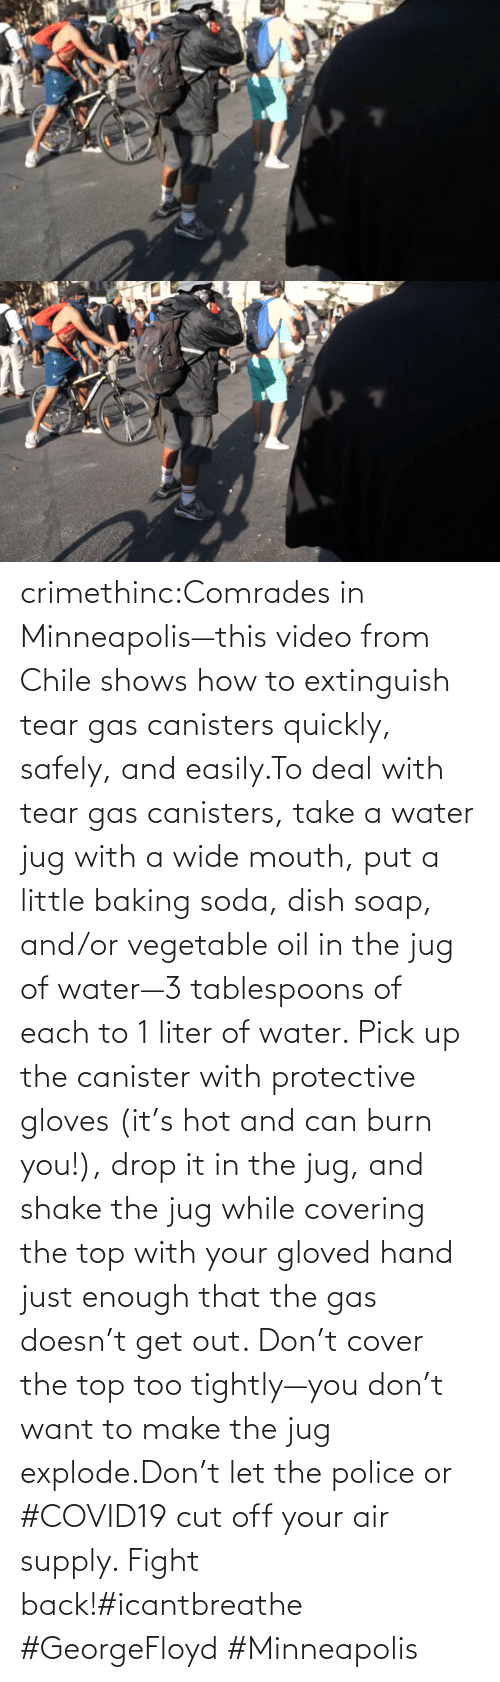 hot: crimethinc:Comrades in Minneapolis—this video from Chile shows how to extinguish tear gas canisters quickly, safely, and easily.To deal with tear gas canisters, take a water jug with a wide mouth, put a little baking soda, dish soap, and/or vegetable oil in the jug of water—3 tablespoons of each to 1 liter of water. Pick up the canister with protective gloves (it's hot and can burn you!), drop it in the jug, and shake the jug while covering the top with your gloved hand just enough that the gas doesn't get out. Don't cover the top too tightly—you don't want to make the jug explode.Don't let the police or #COVID19 cut off your air supply. Fight back!#icantbreathe #GeorgeFloyd #Minneapolis